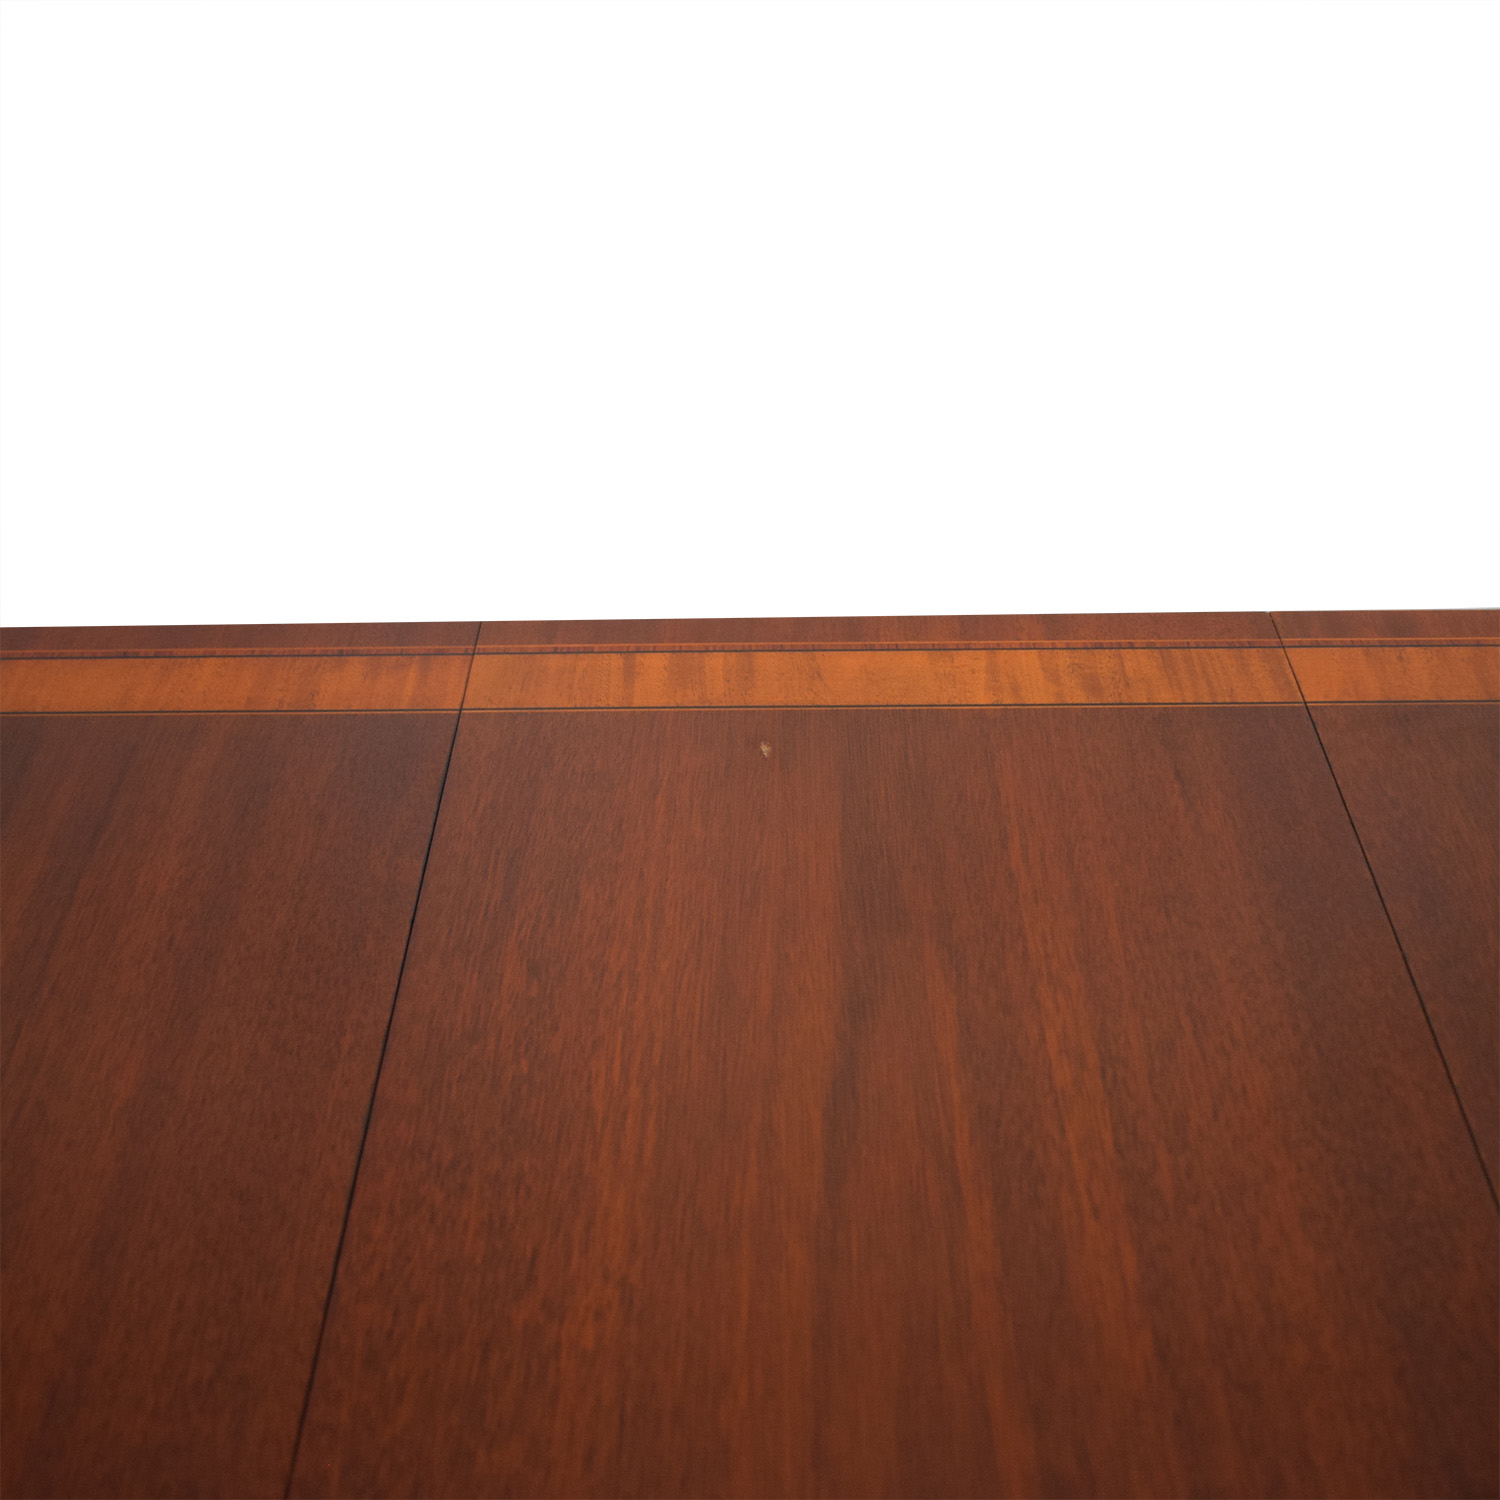 Kindel Kindel Mahogany Extension Dining Table second hand